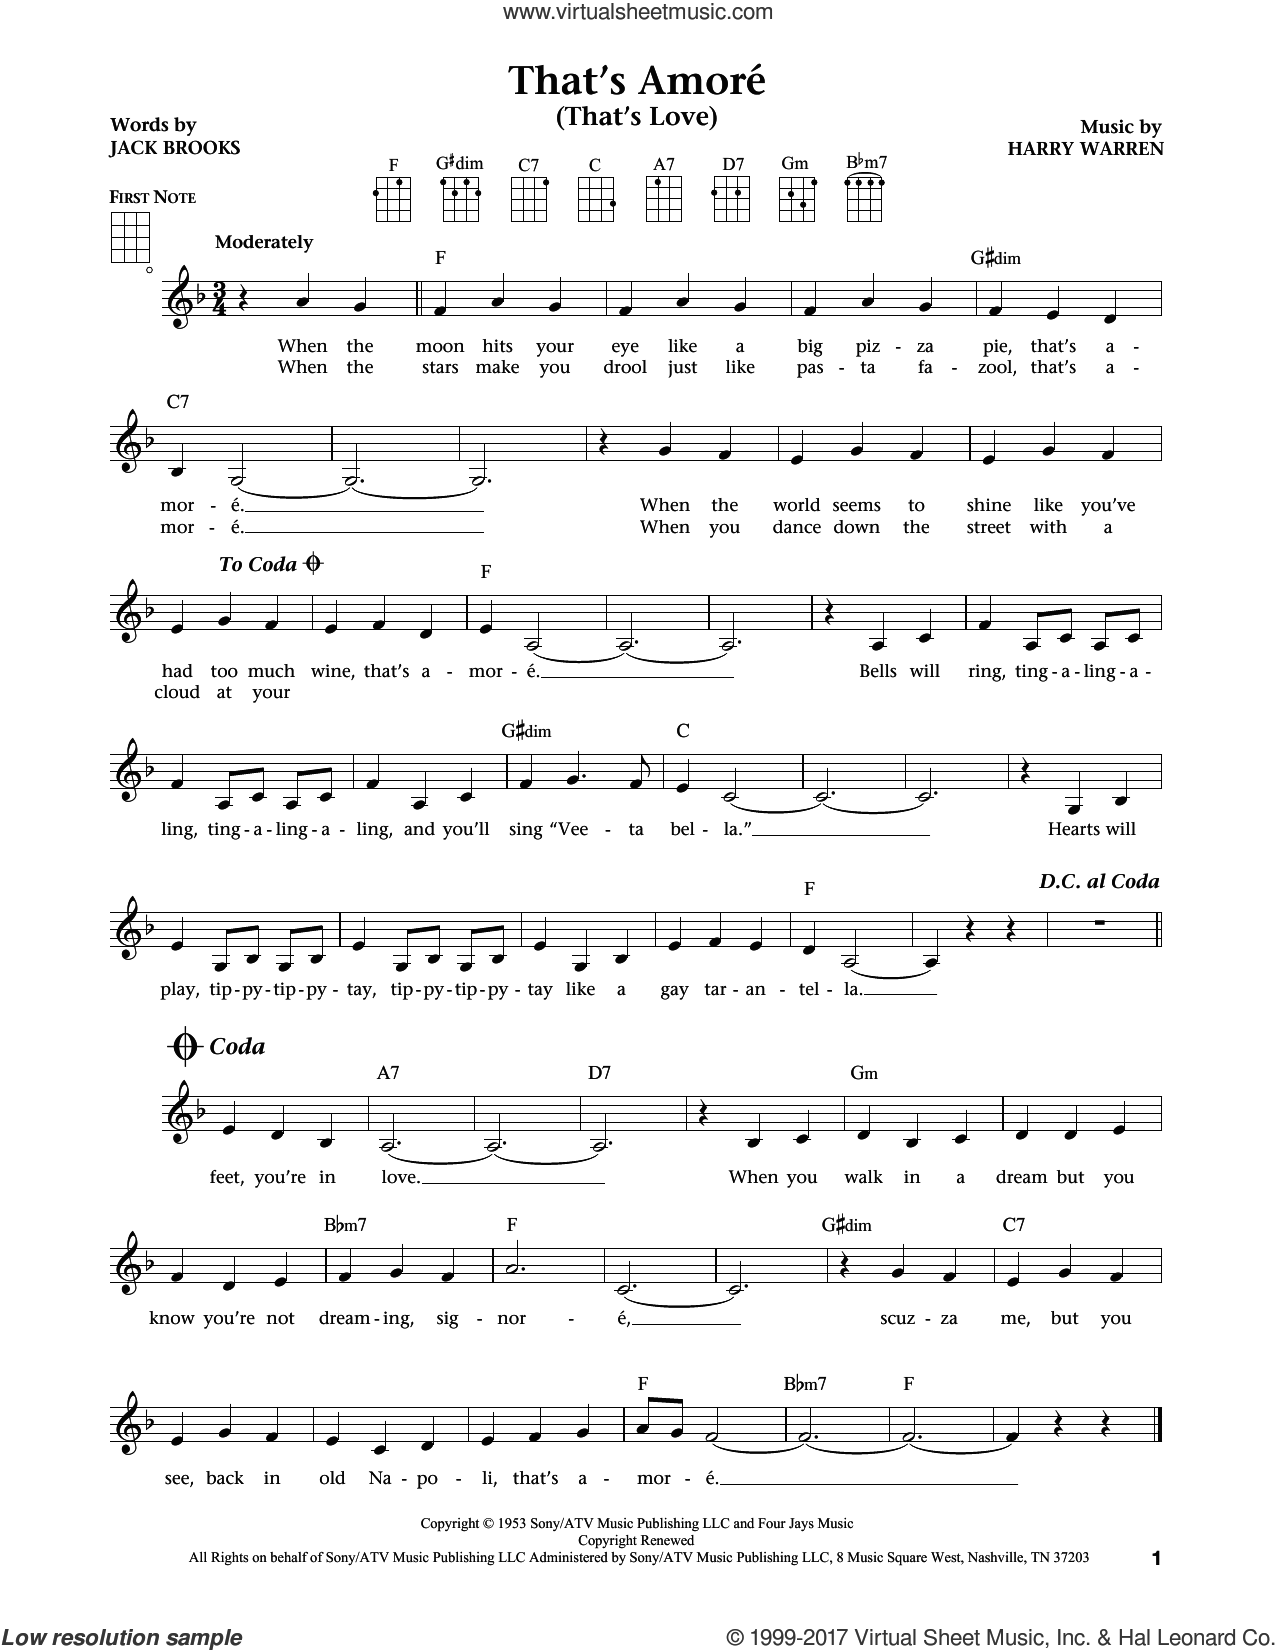 That's Amore (That's Love) (from The Daily Ukulele) (arr. Liz and Jim Beloff) sheet music for ukulele by Harry Warren, Jim Beloff, Liz Beloff and Jack Brooks, intermediate skill level